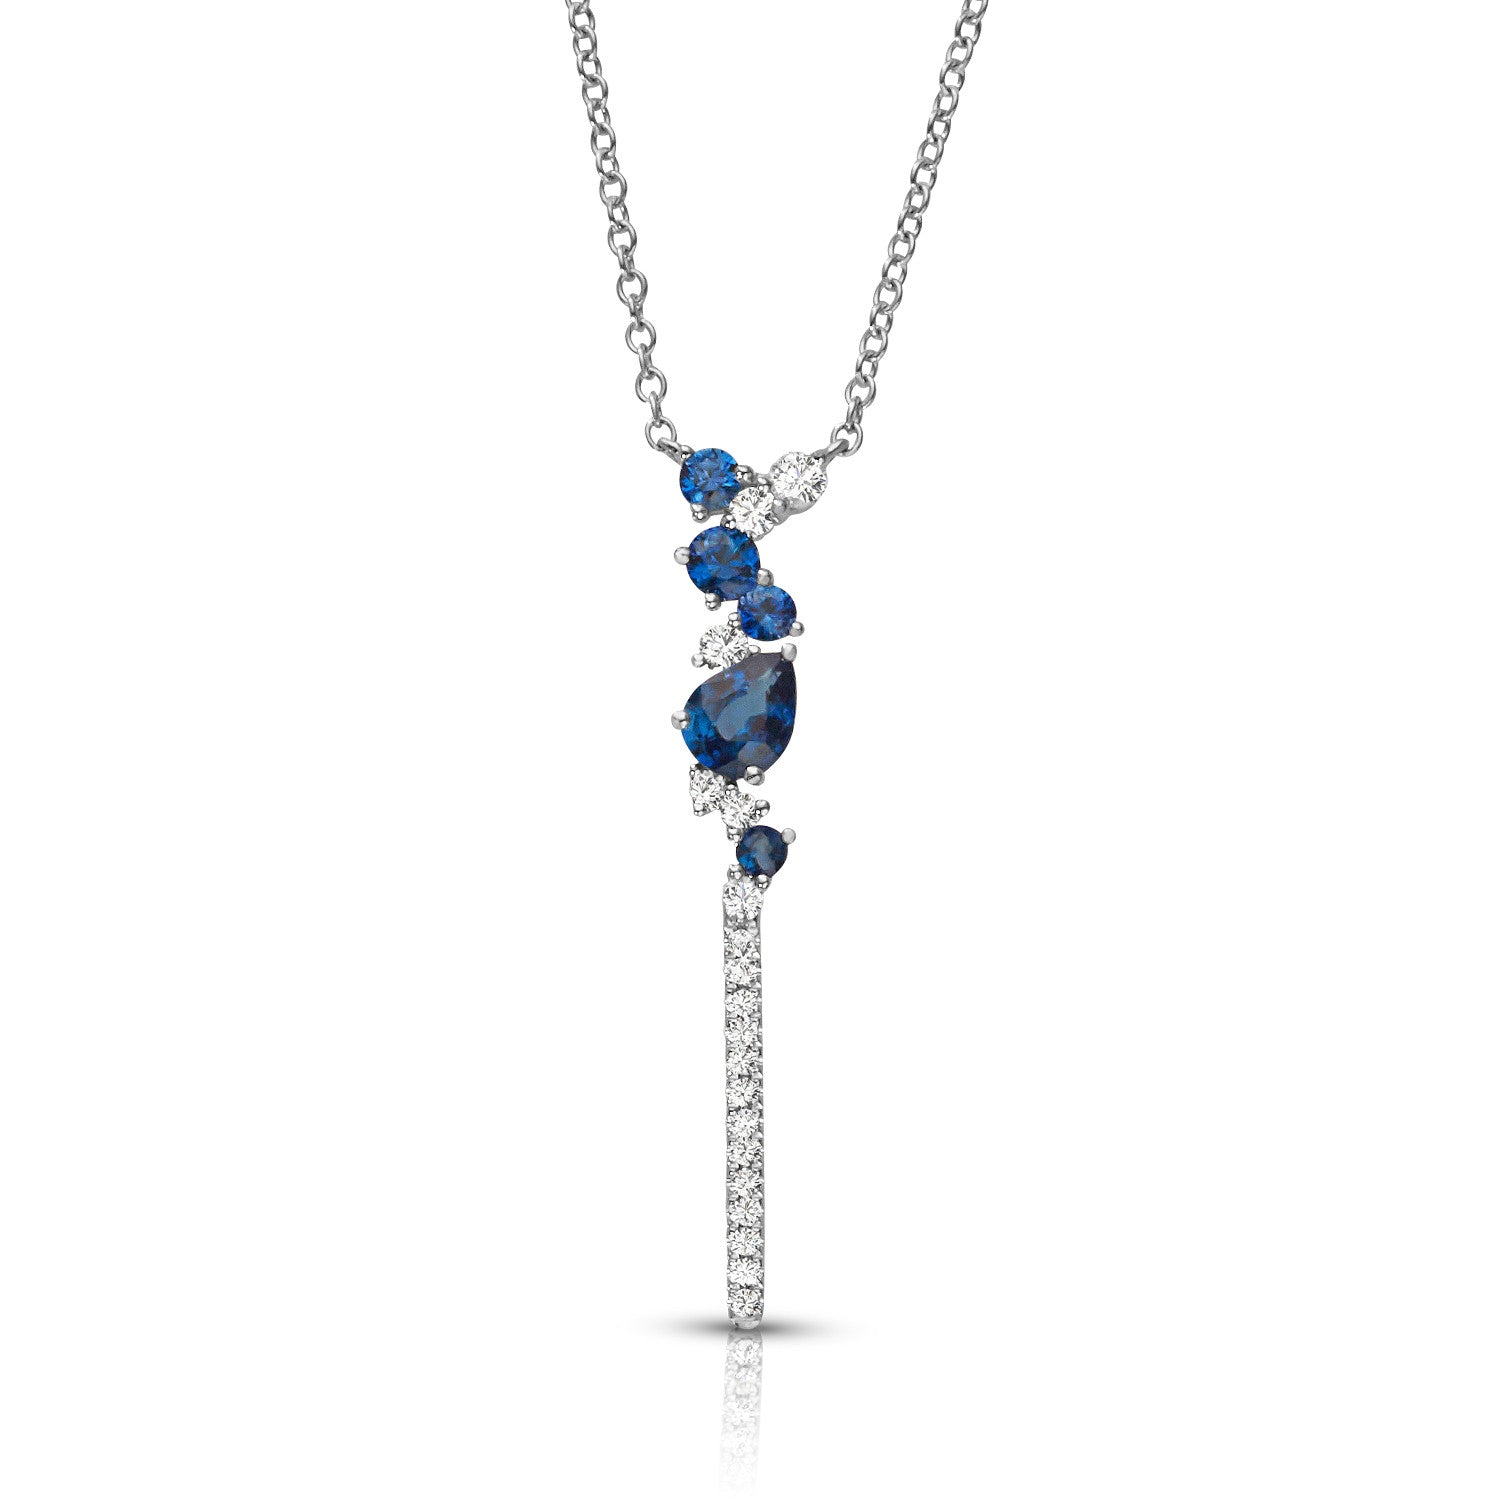 14K Couture Diamond & Sapphire Necklace - Crestwood Jewelers